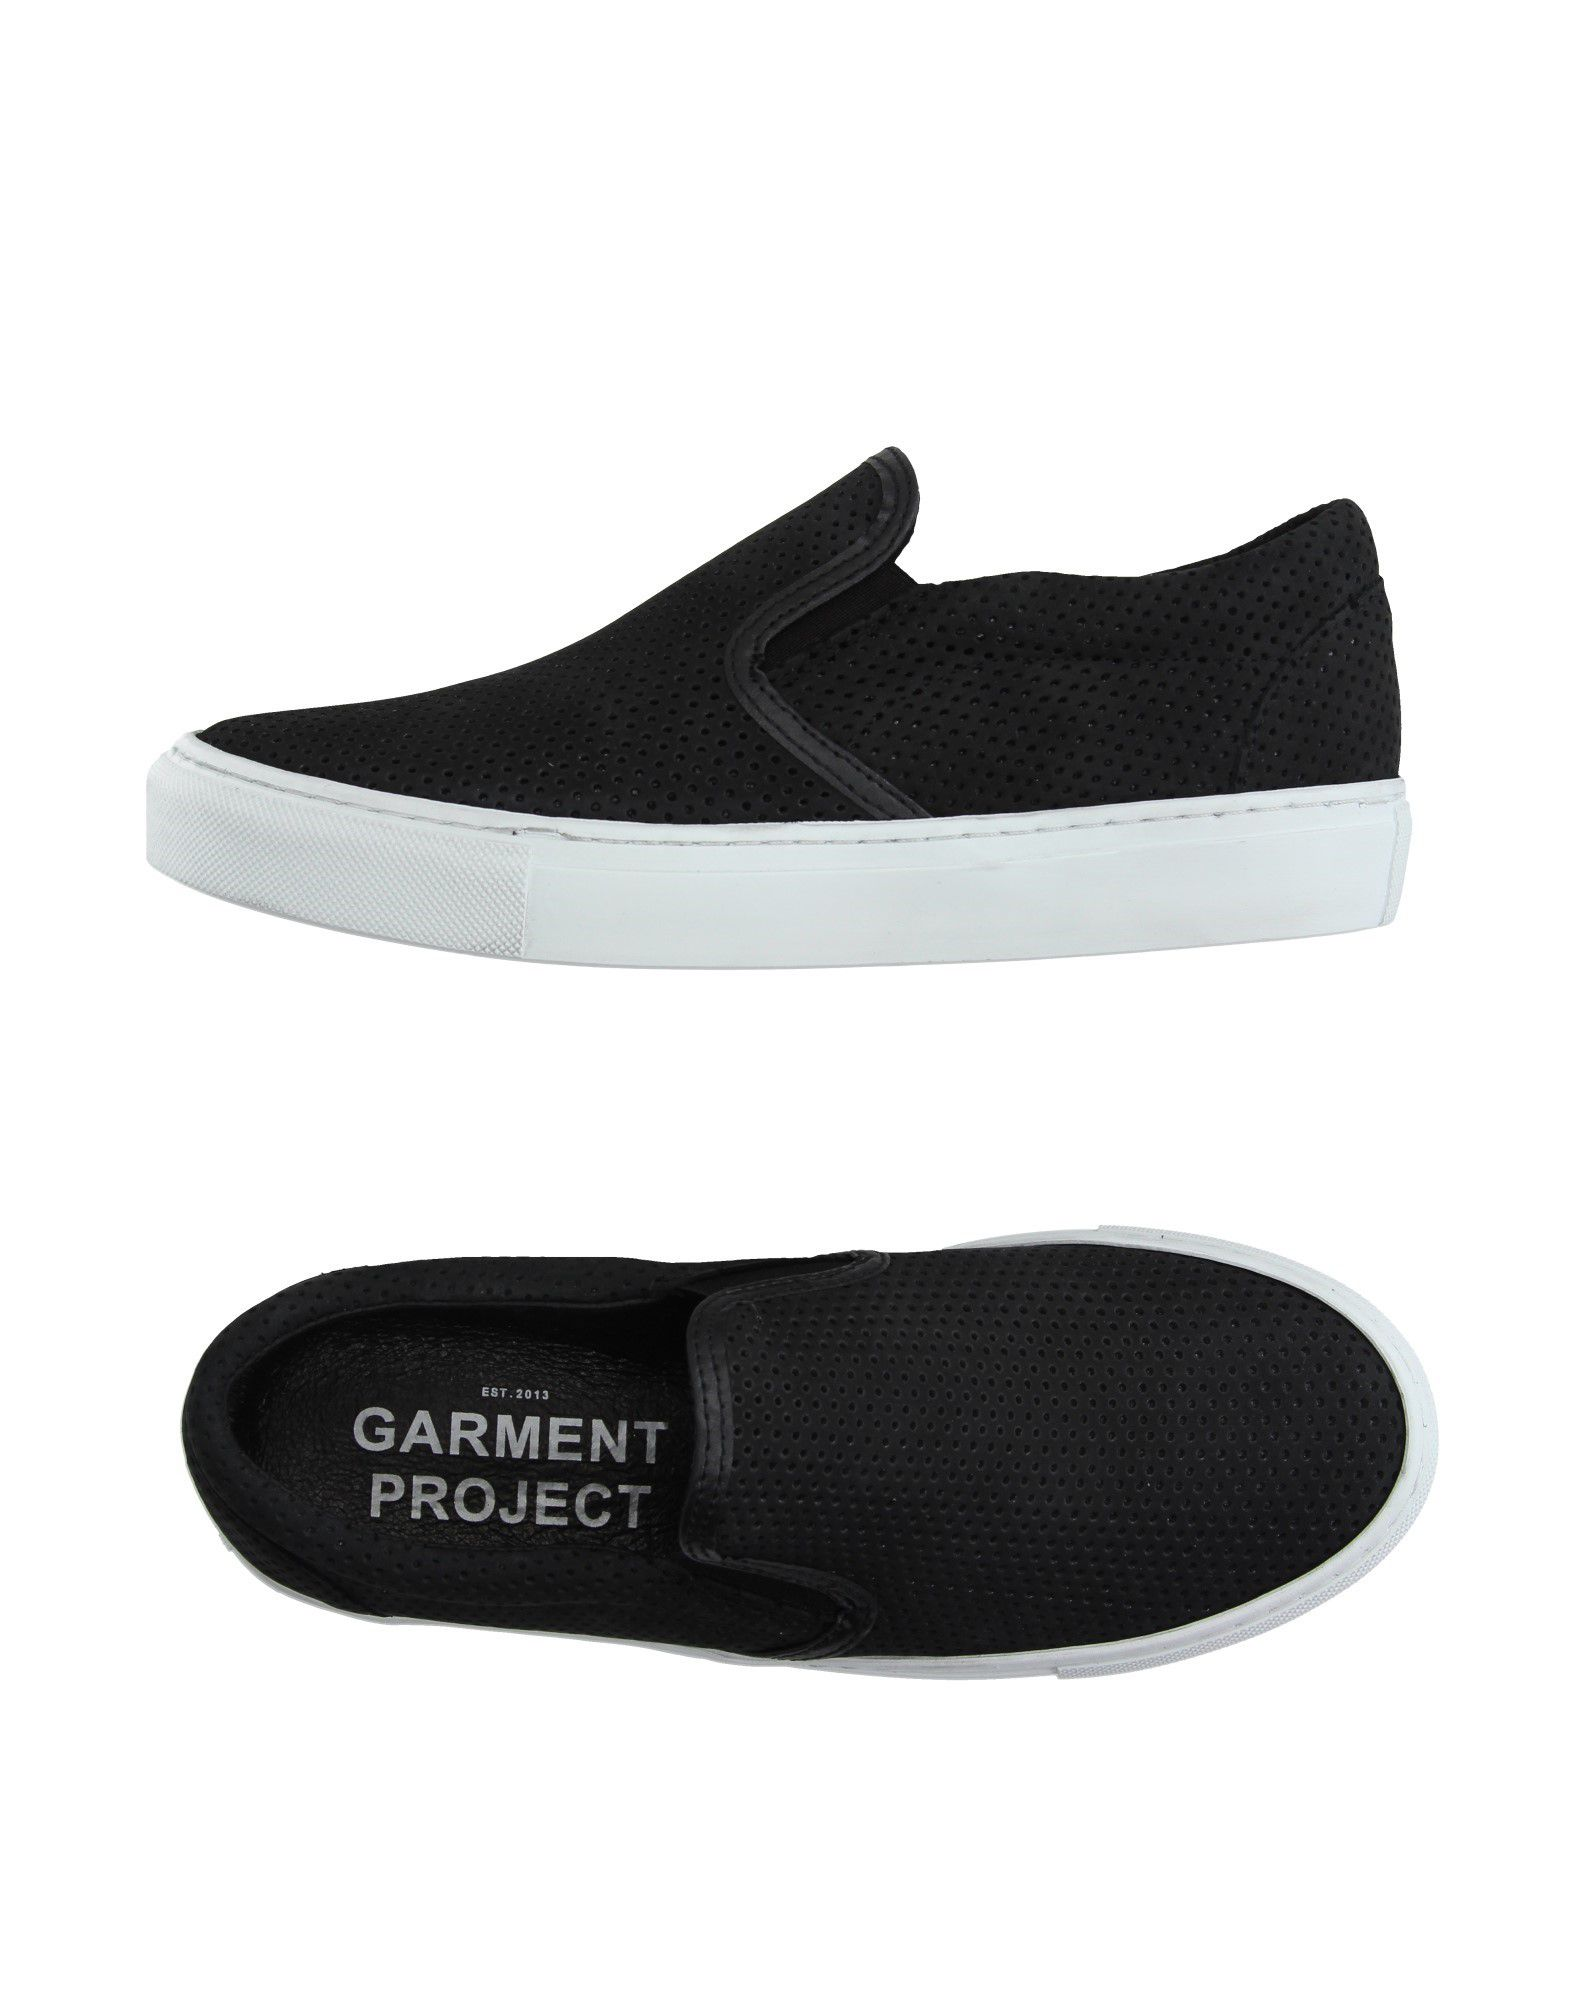 Garment Project Sneakers - Women Garment Project Canada Sneakers online on  Canada Project - 11008707IN 7d06c5